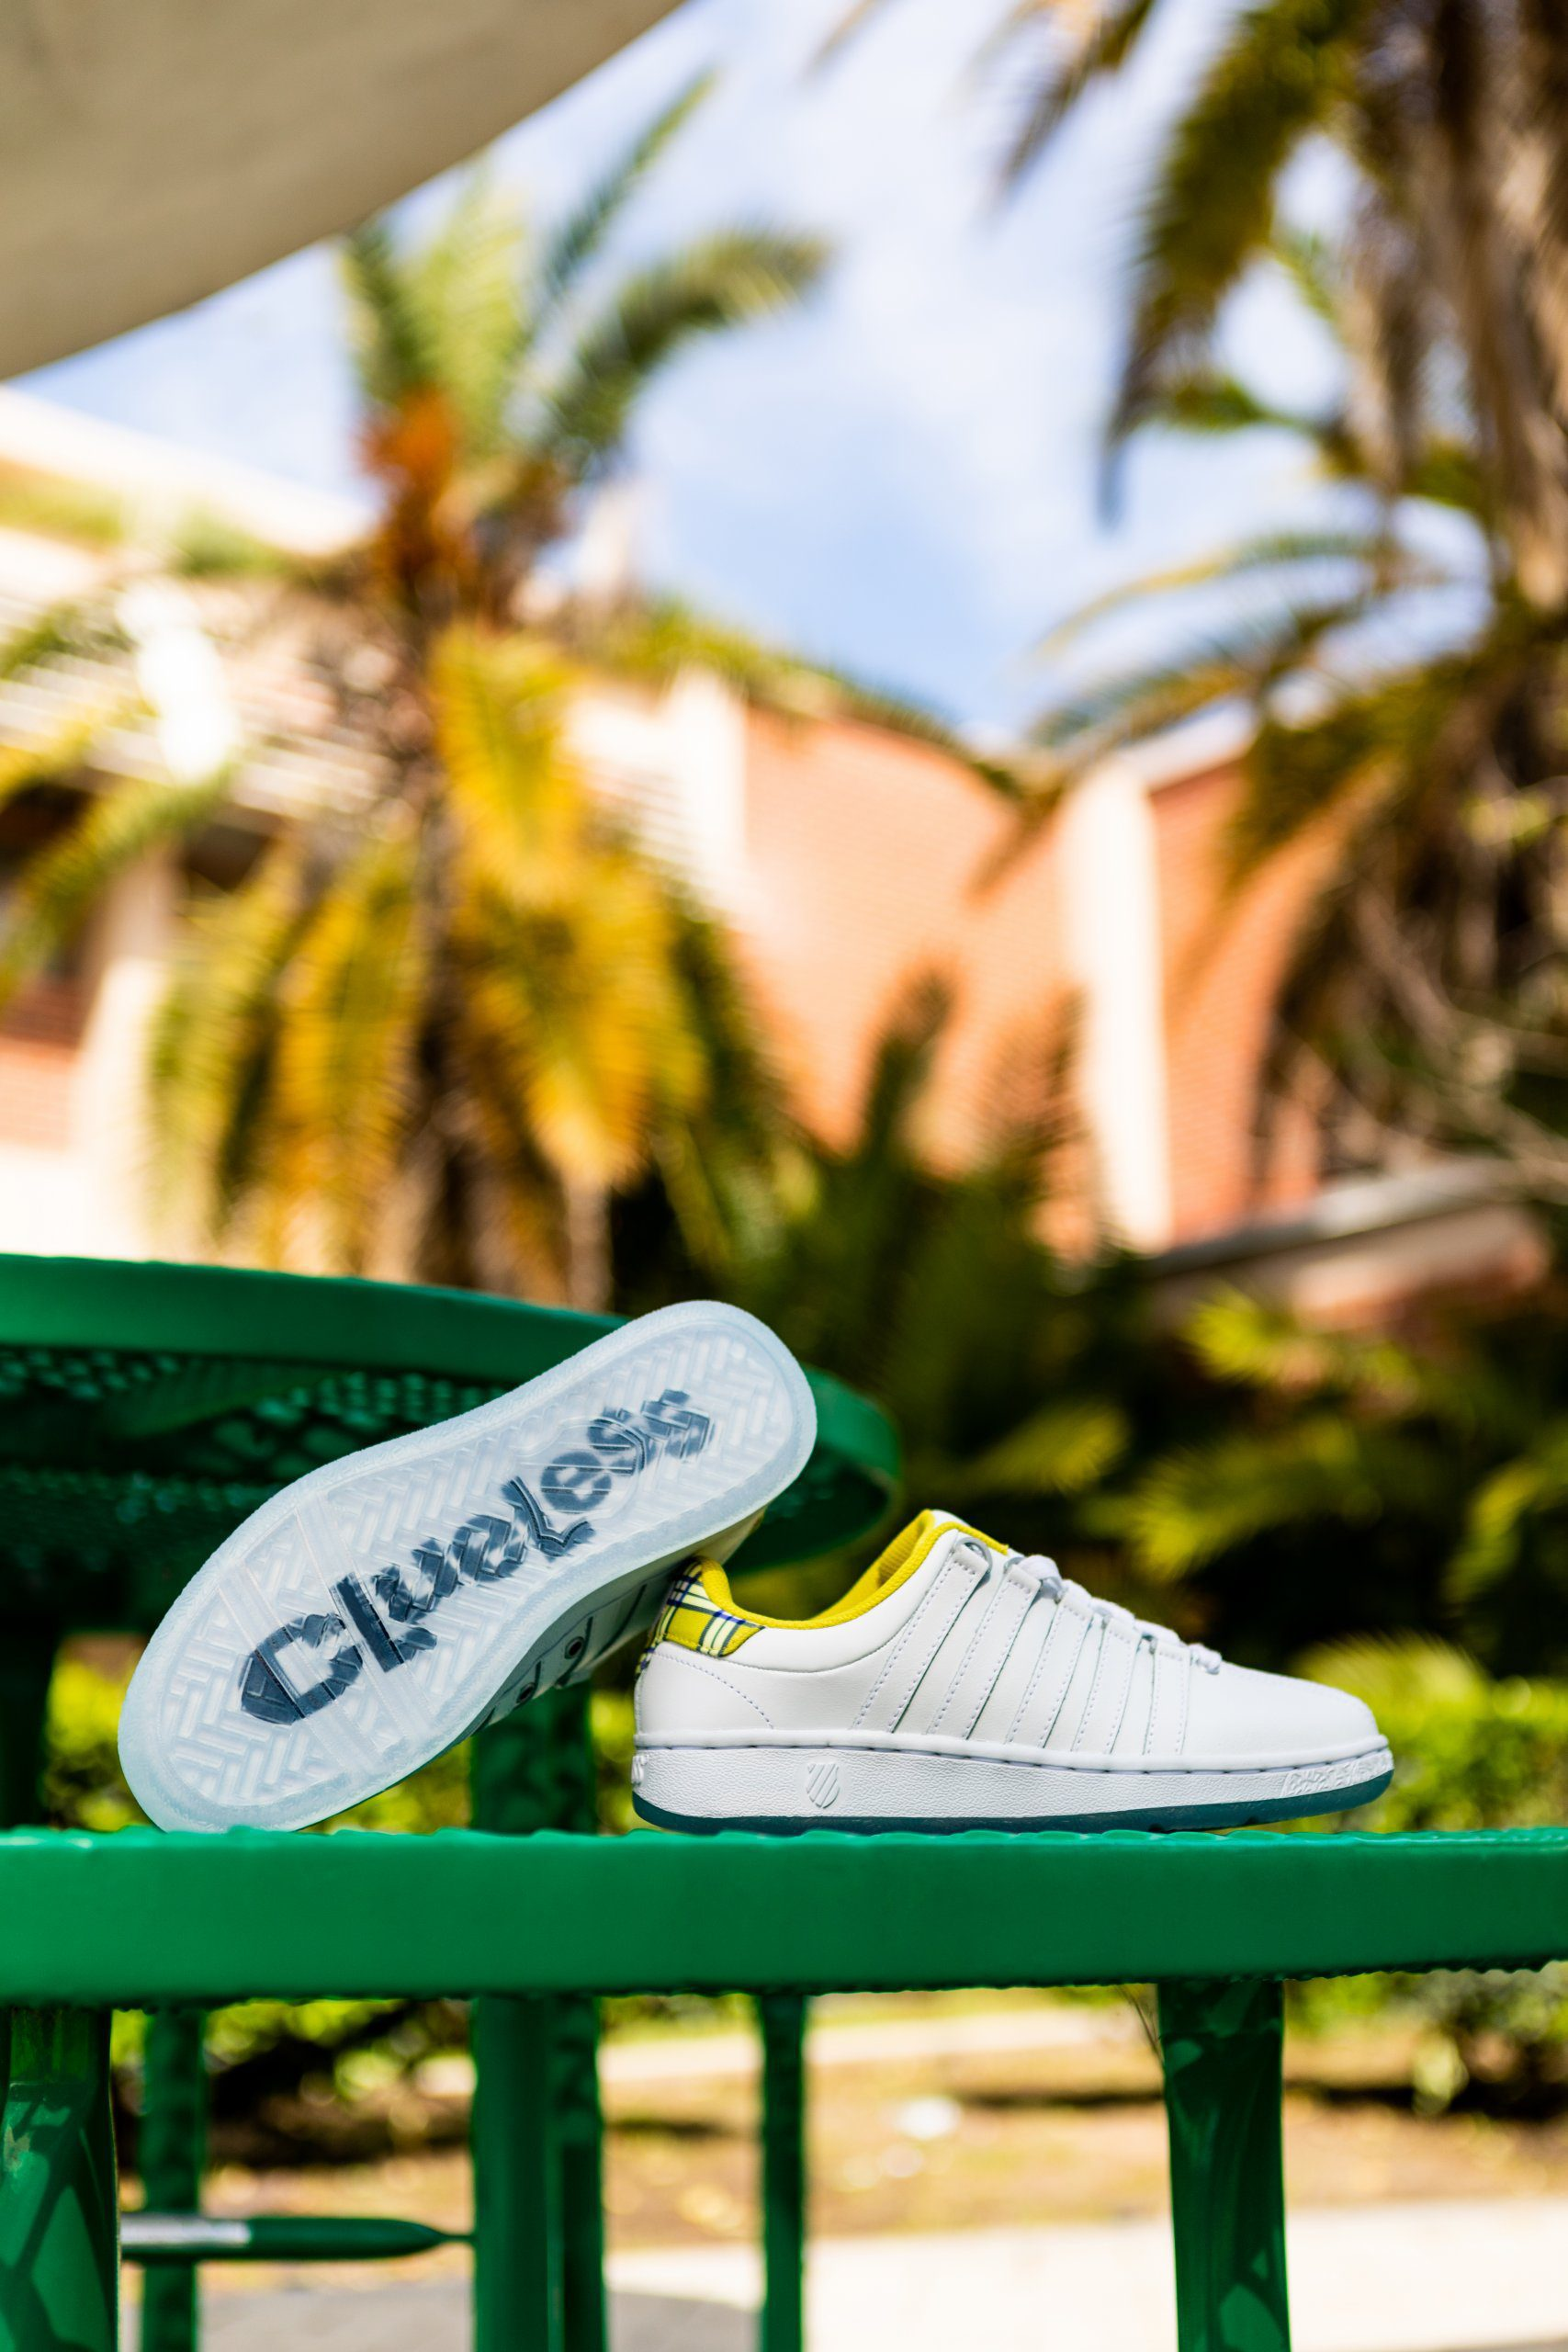 kswiss-clueless-product-print-6